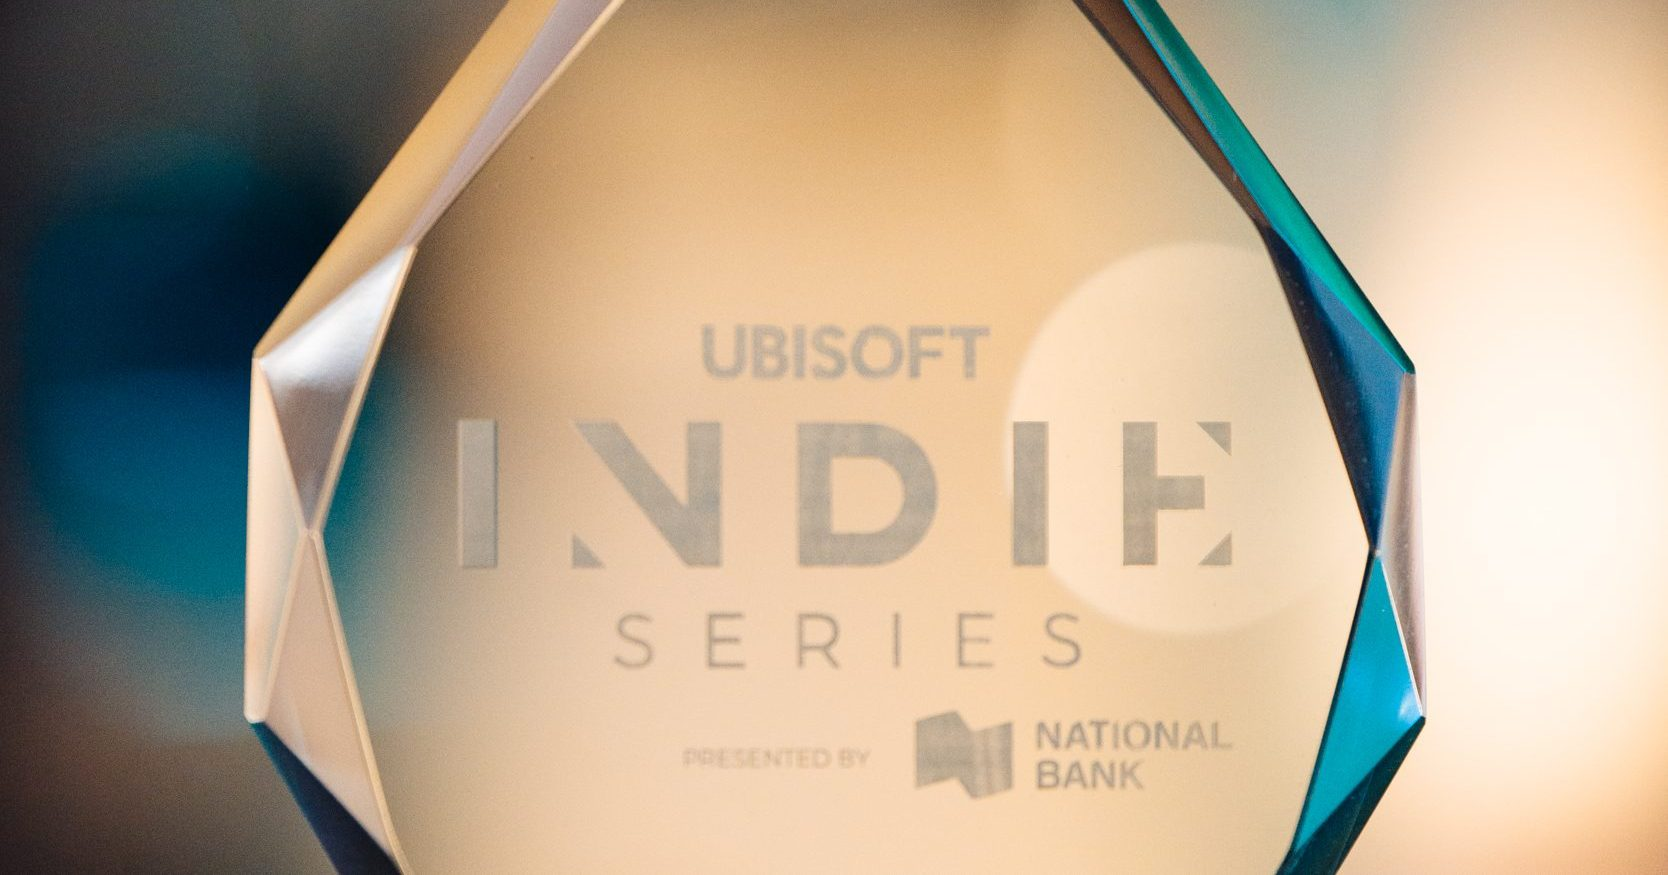 Congrats to the 2020 Winners of the Ubisoft Indie Series